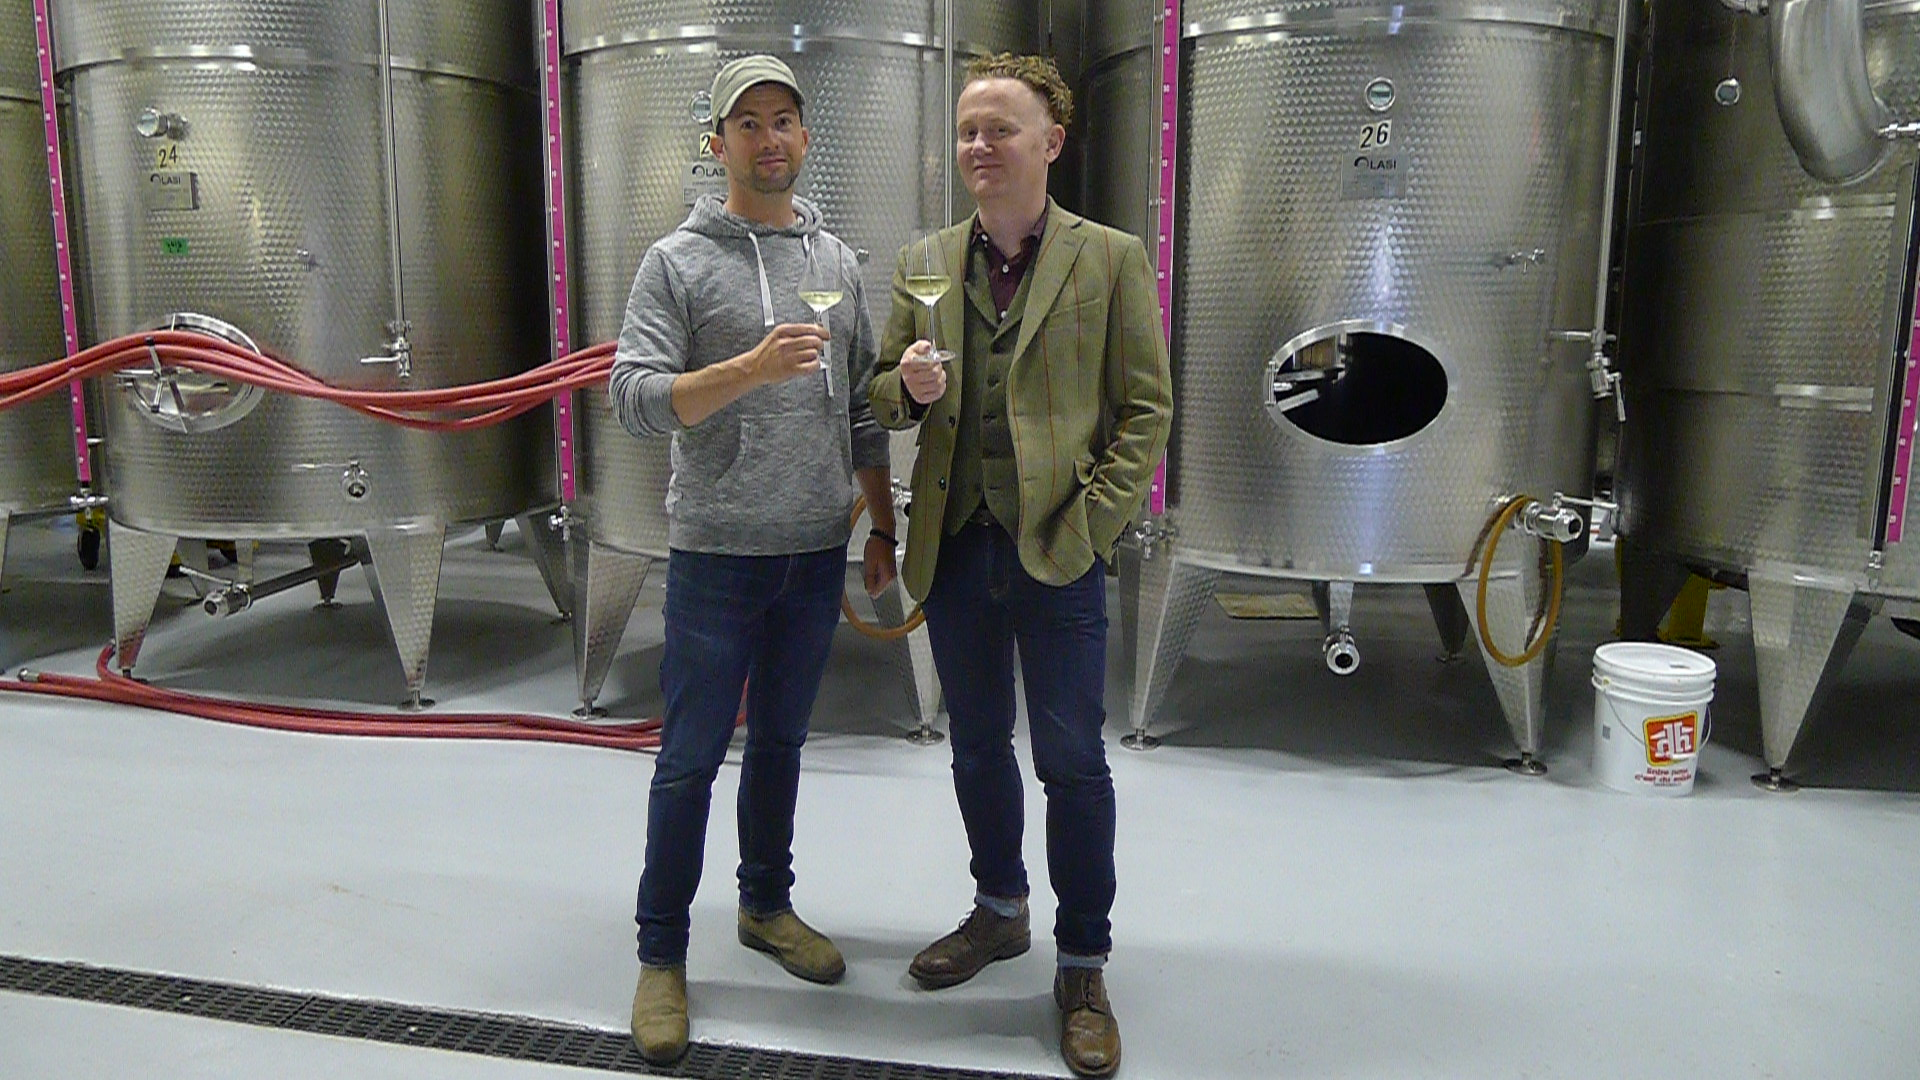 Two Sisters Winemaker Adam Pearce with Good Food Revolution's Adam Pearce at the winery.